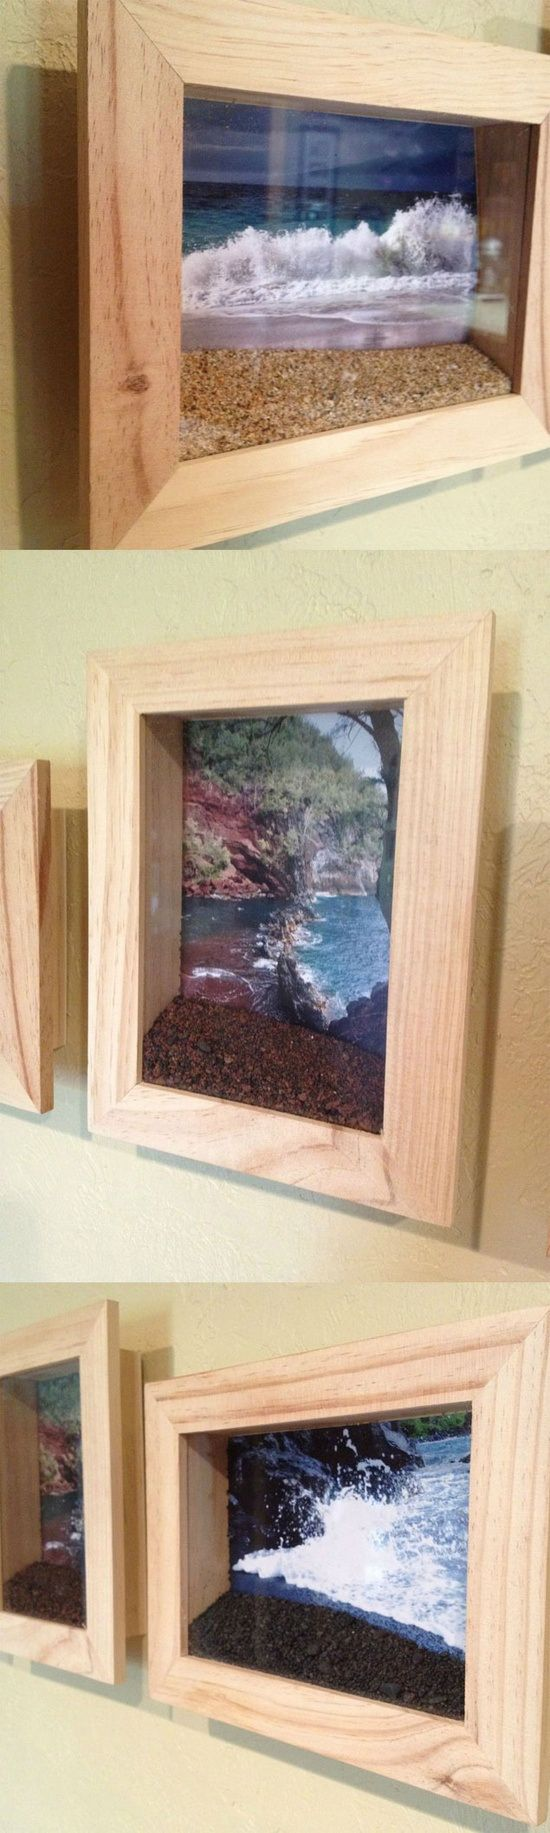 Put a photo of the beach or location you visited into a shadowbox frame.  Add some sand, pine needles, pebbles, whatever is in the photo